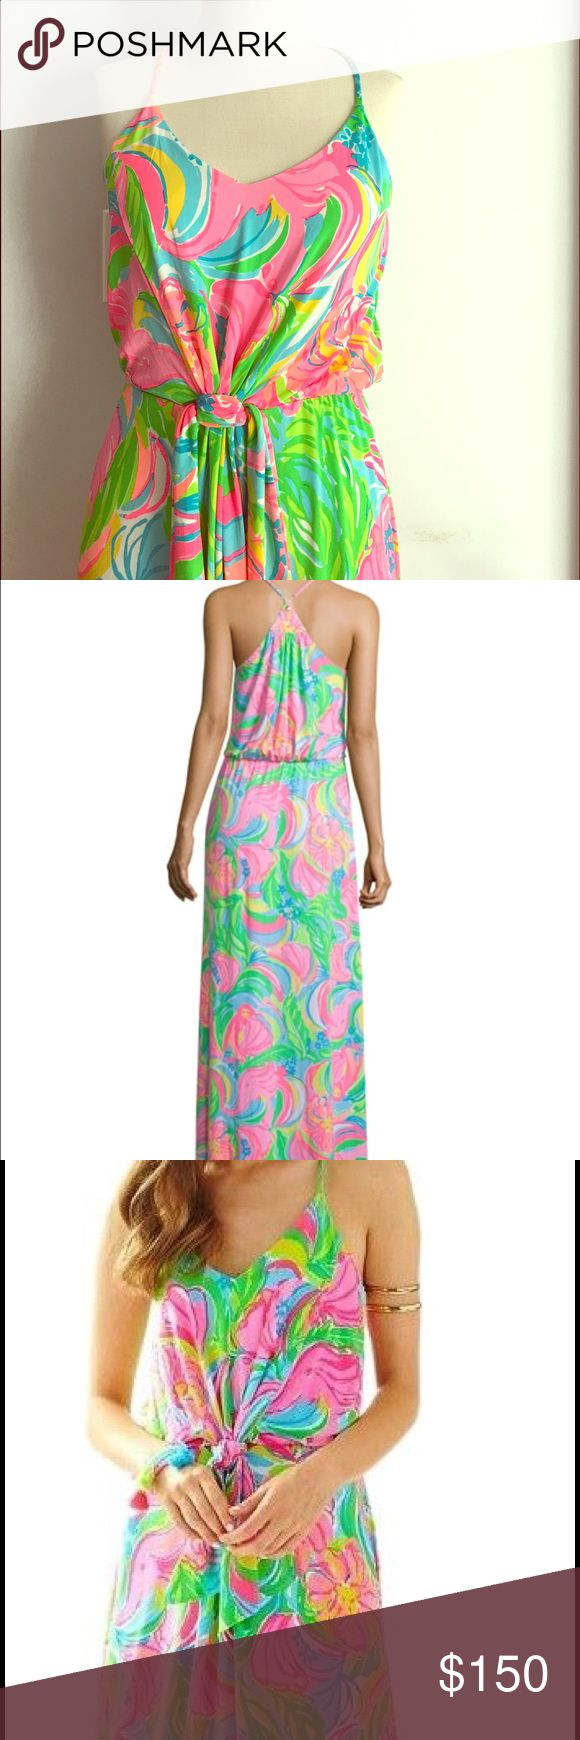 Lilly Pulitzer Rosa Maxi Dress The Rosa Maxi Dress is a printed strappy maxi dress with a faux tie waistline. This gorgeous maxi has a racer back and v-neckline. Wear this dress to a wedding or a date night. Lilly Pulitzer Dresses Maxi